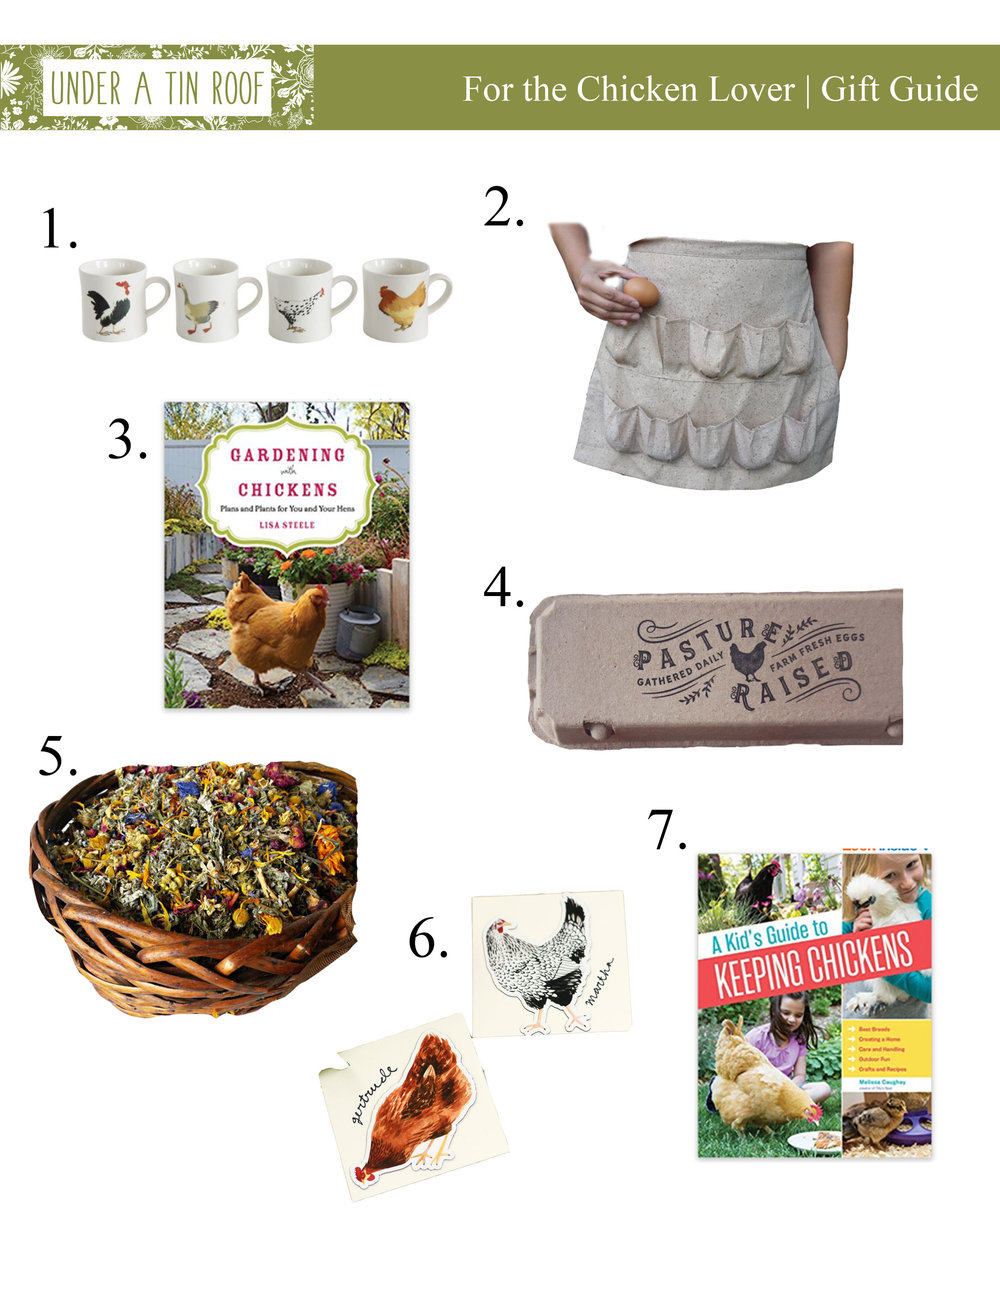 Gifts for the Chicken Lover - Under A Tin Roof Blog